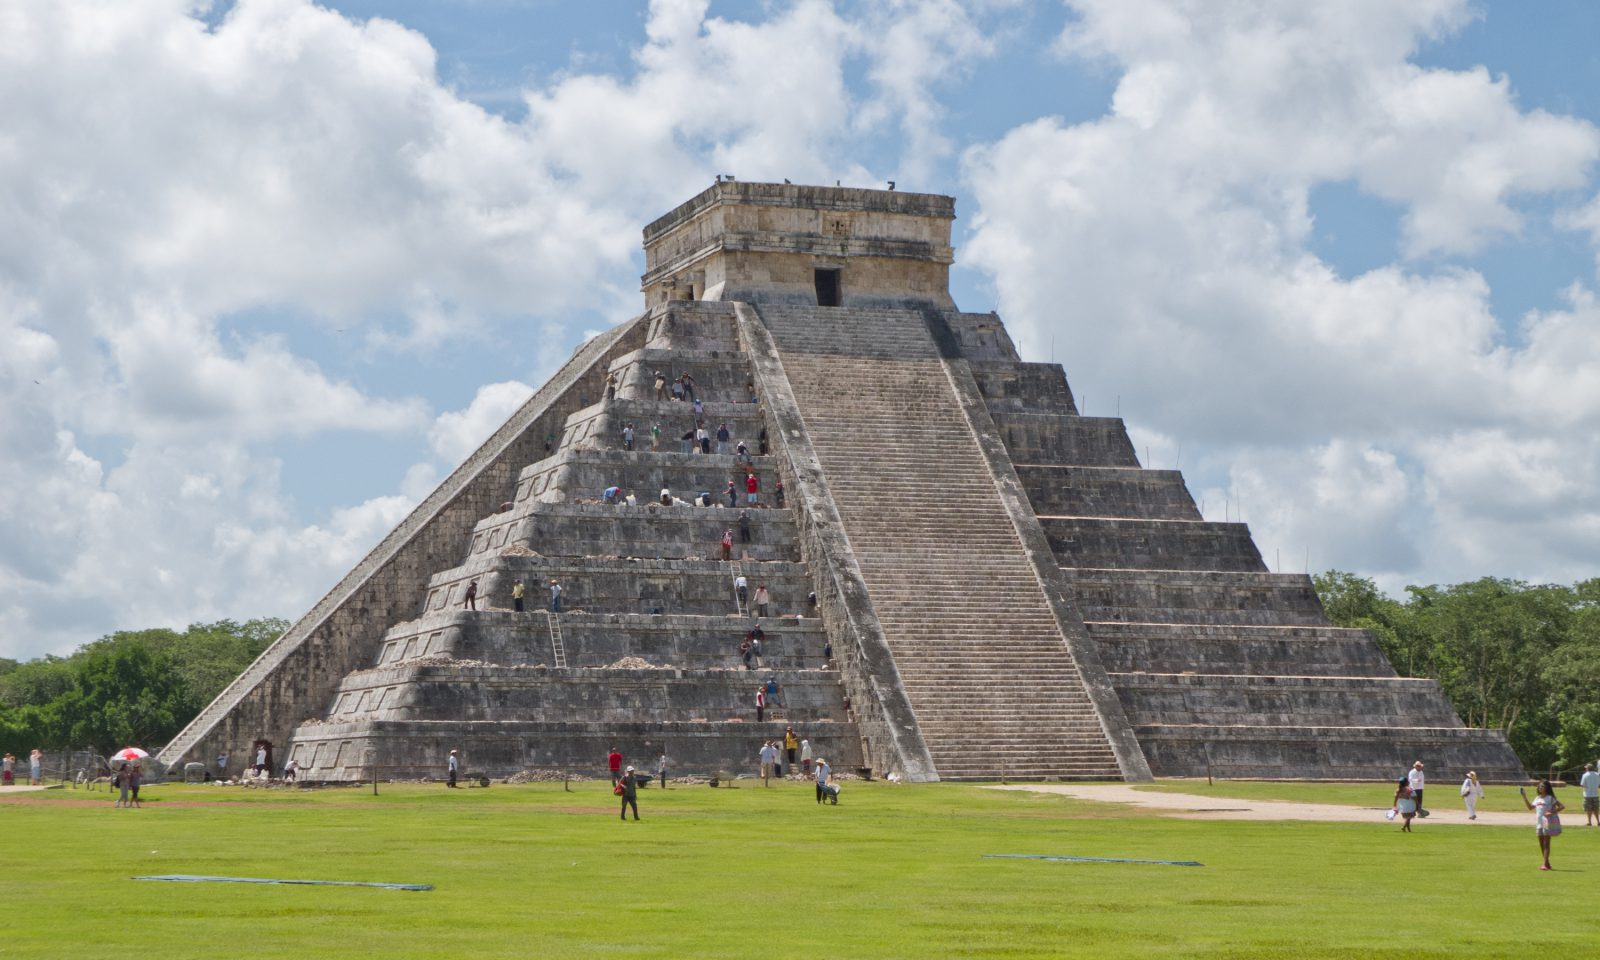 chich n itz in mexico #1 chichen itza chichén itzá is a large mayan archaeological site and one of the most notable and recognized landmarks on the yucatán the site itself was originally a main hub of mayan .